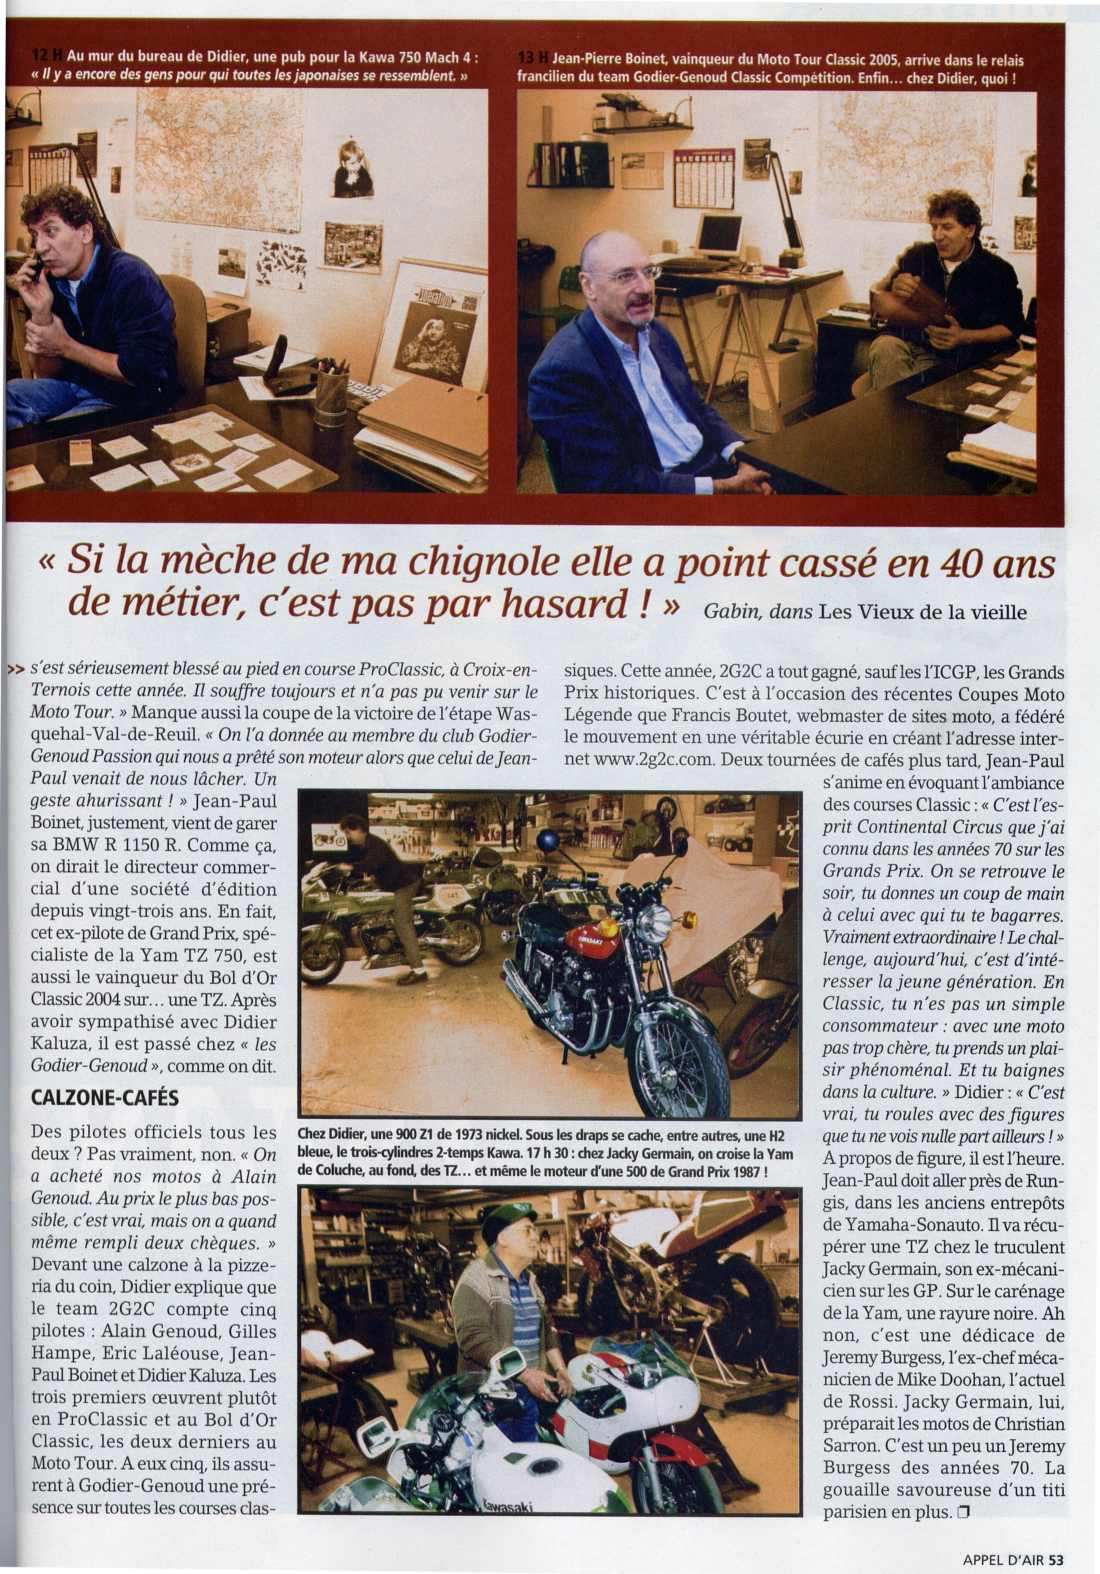 Goider Genoud Moto Journal n°1692 dec 2005 01